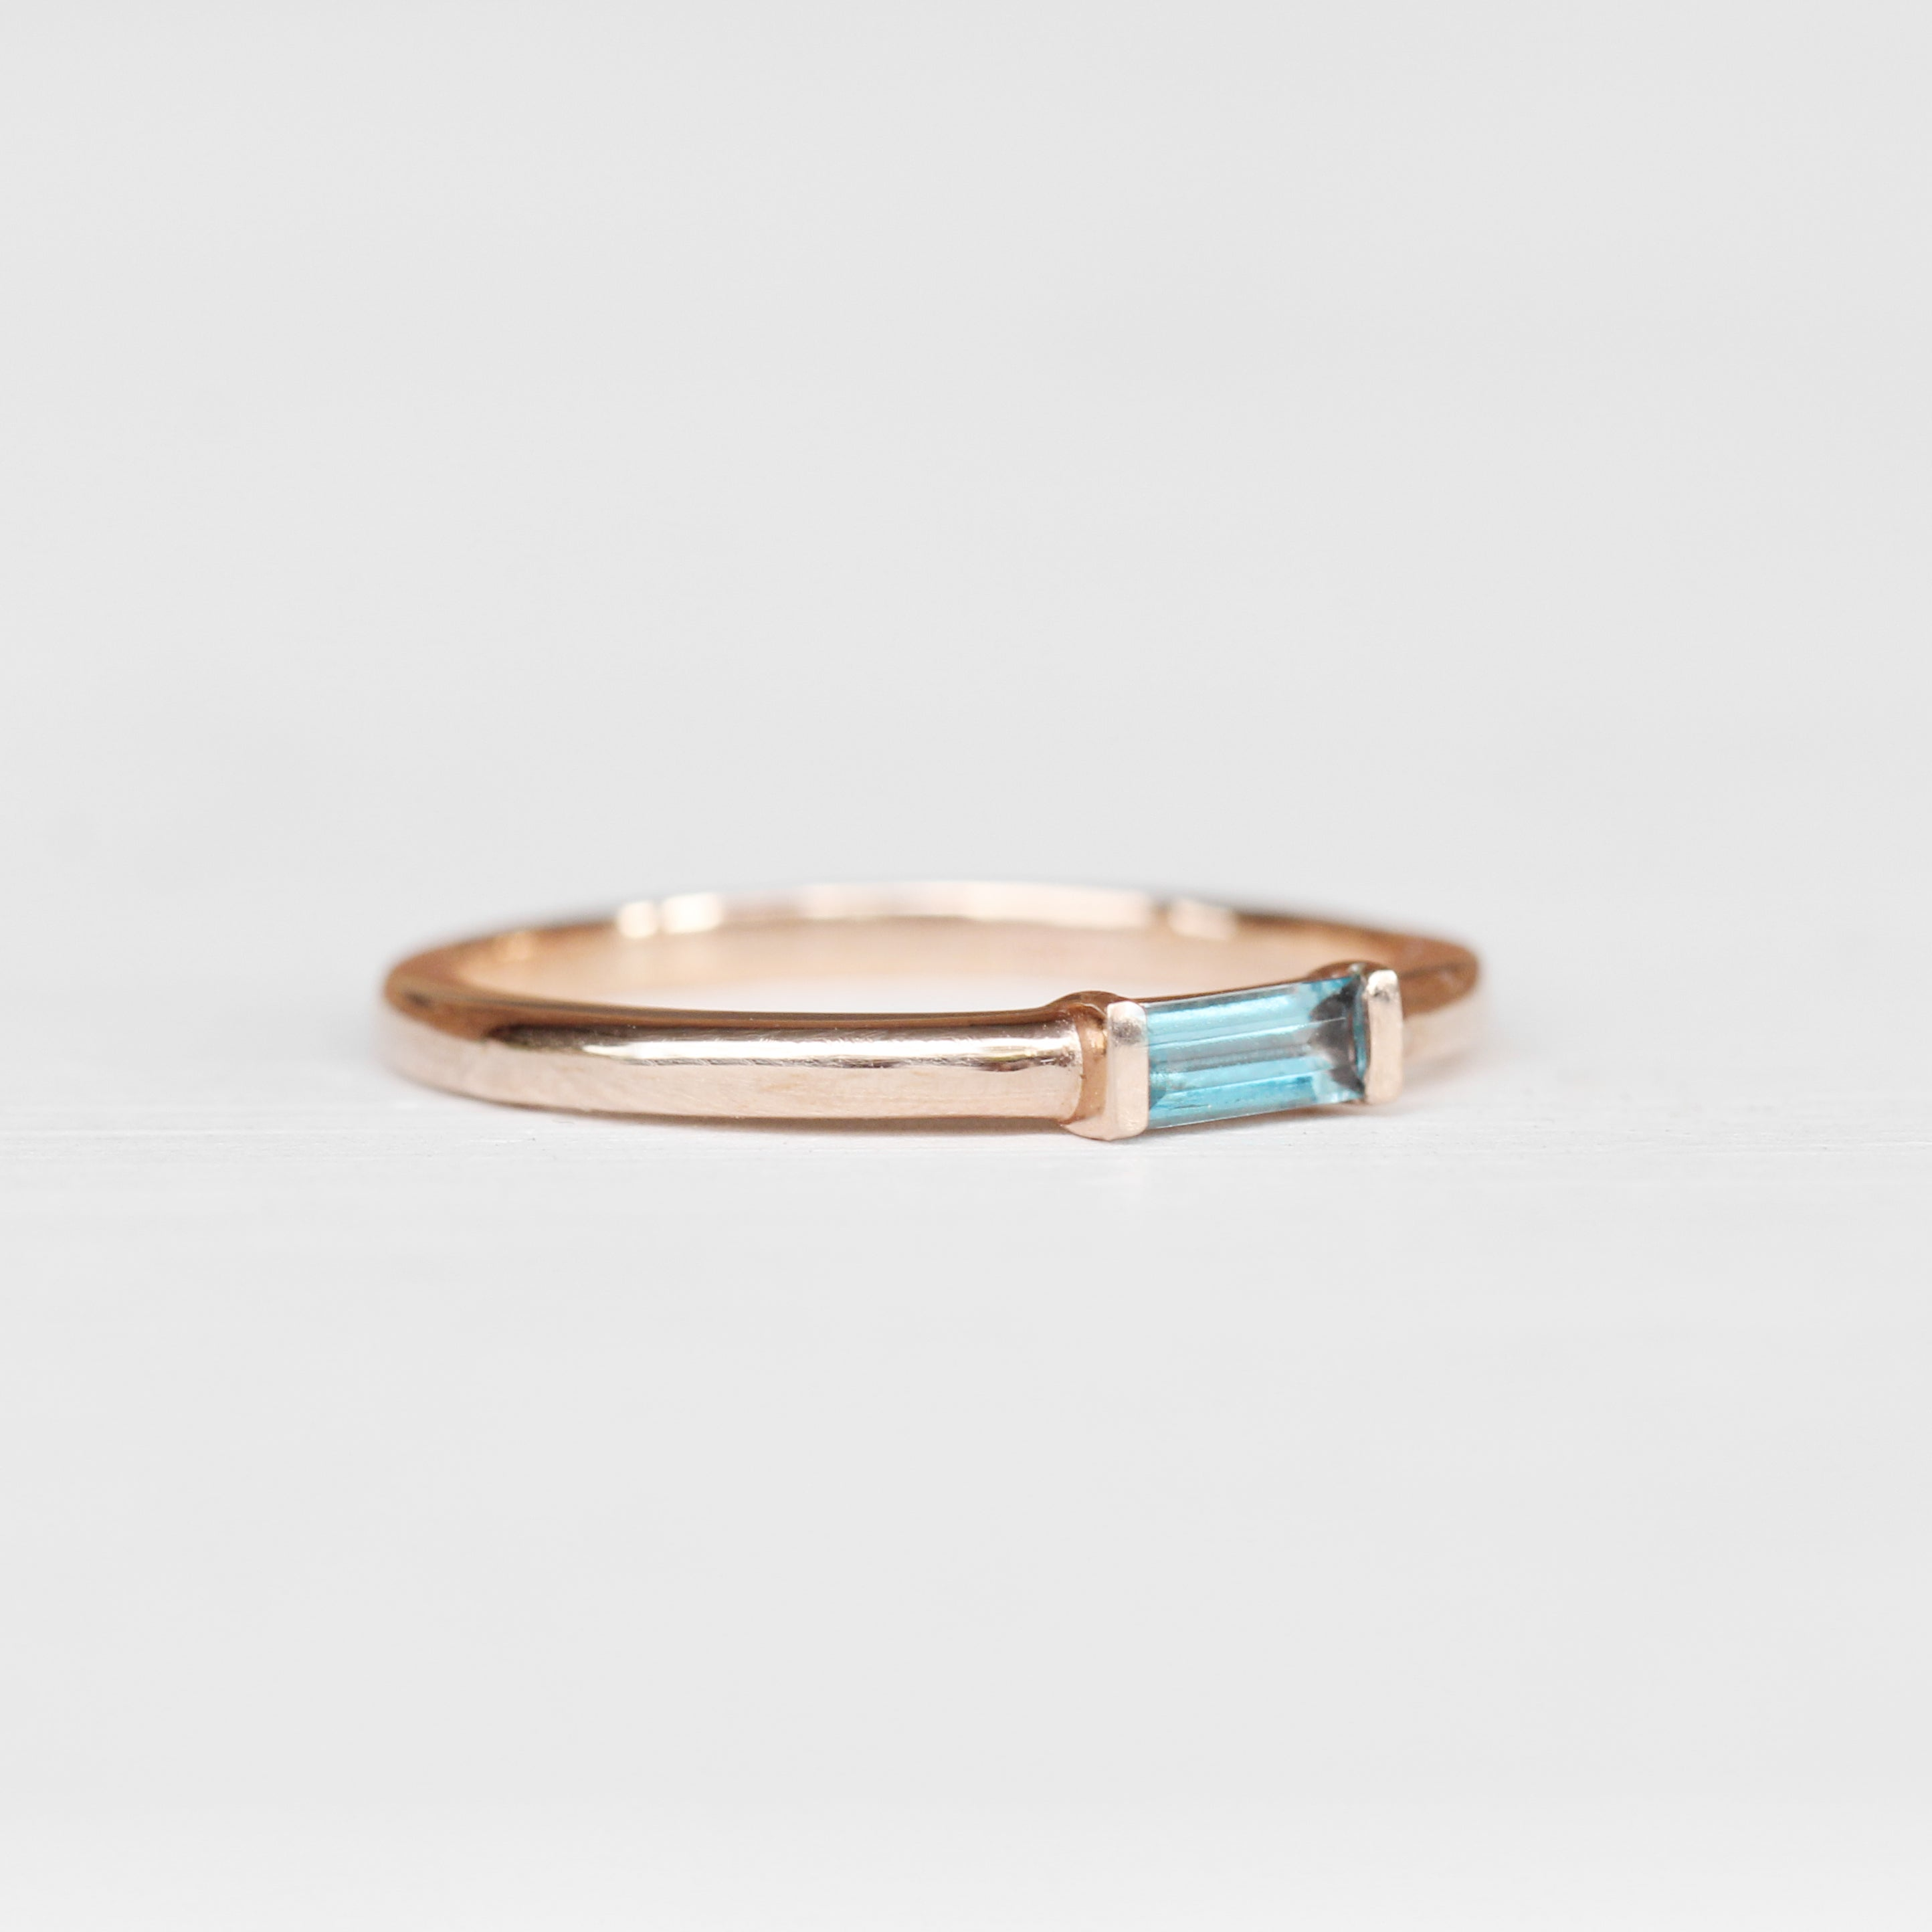 Yael Minimal Baguette Ring - London Blue Topaz Band Stackable Ring in Your Choice of 14k Gold - Celestial Diamonds ® by Midwinter Co.